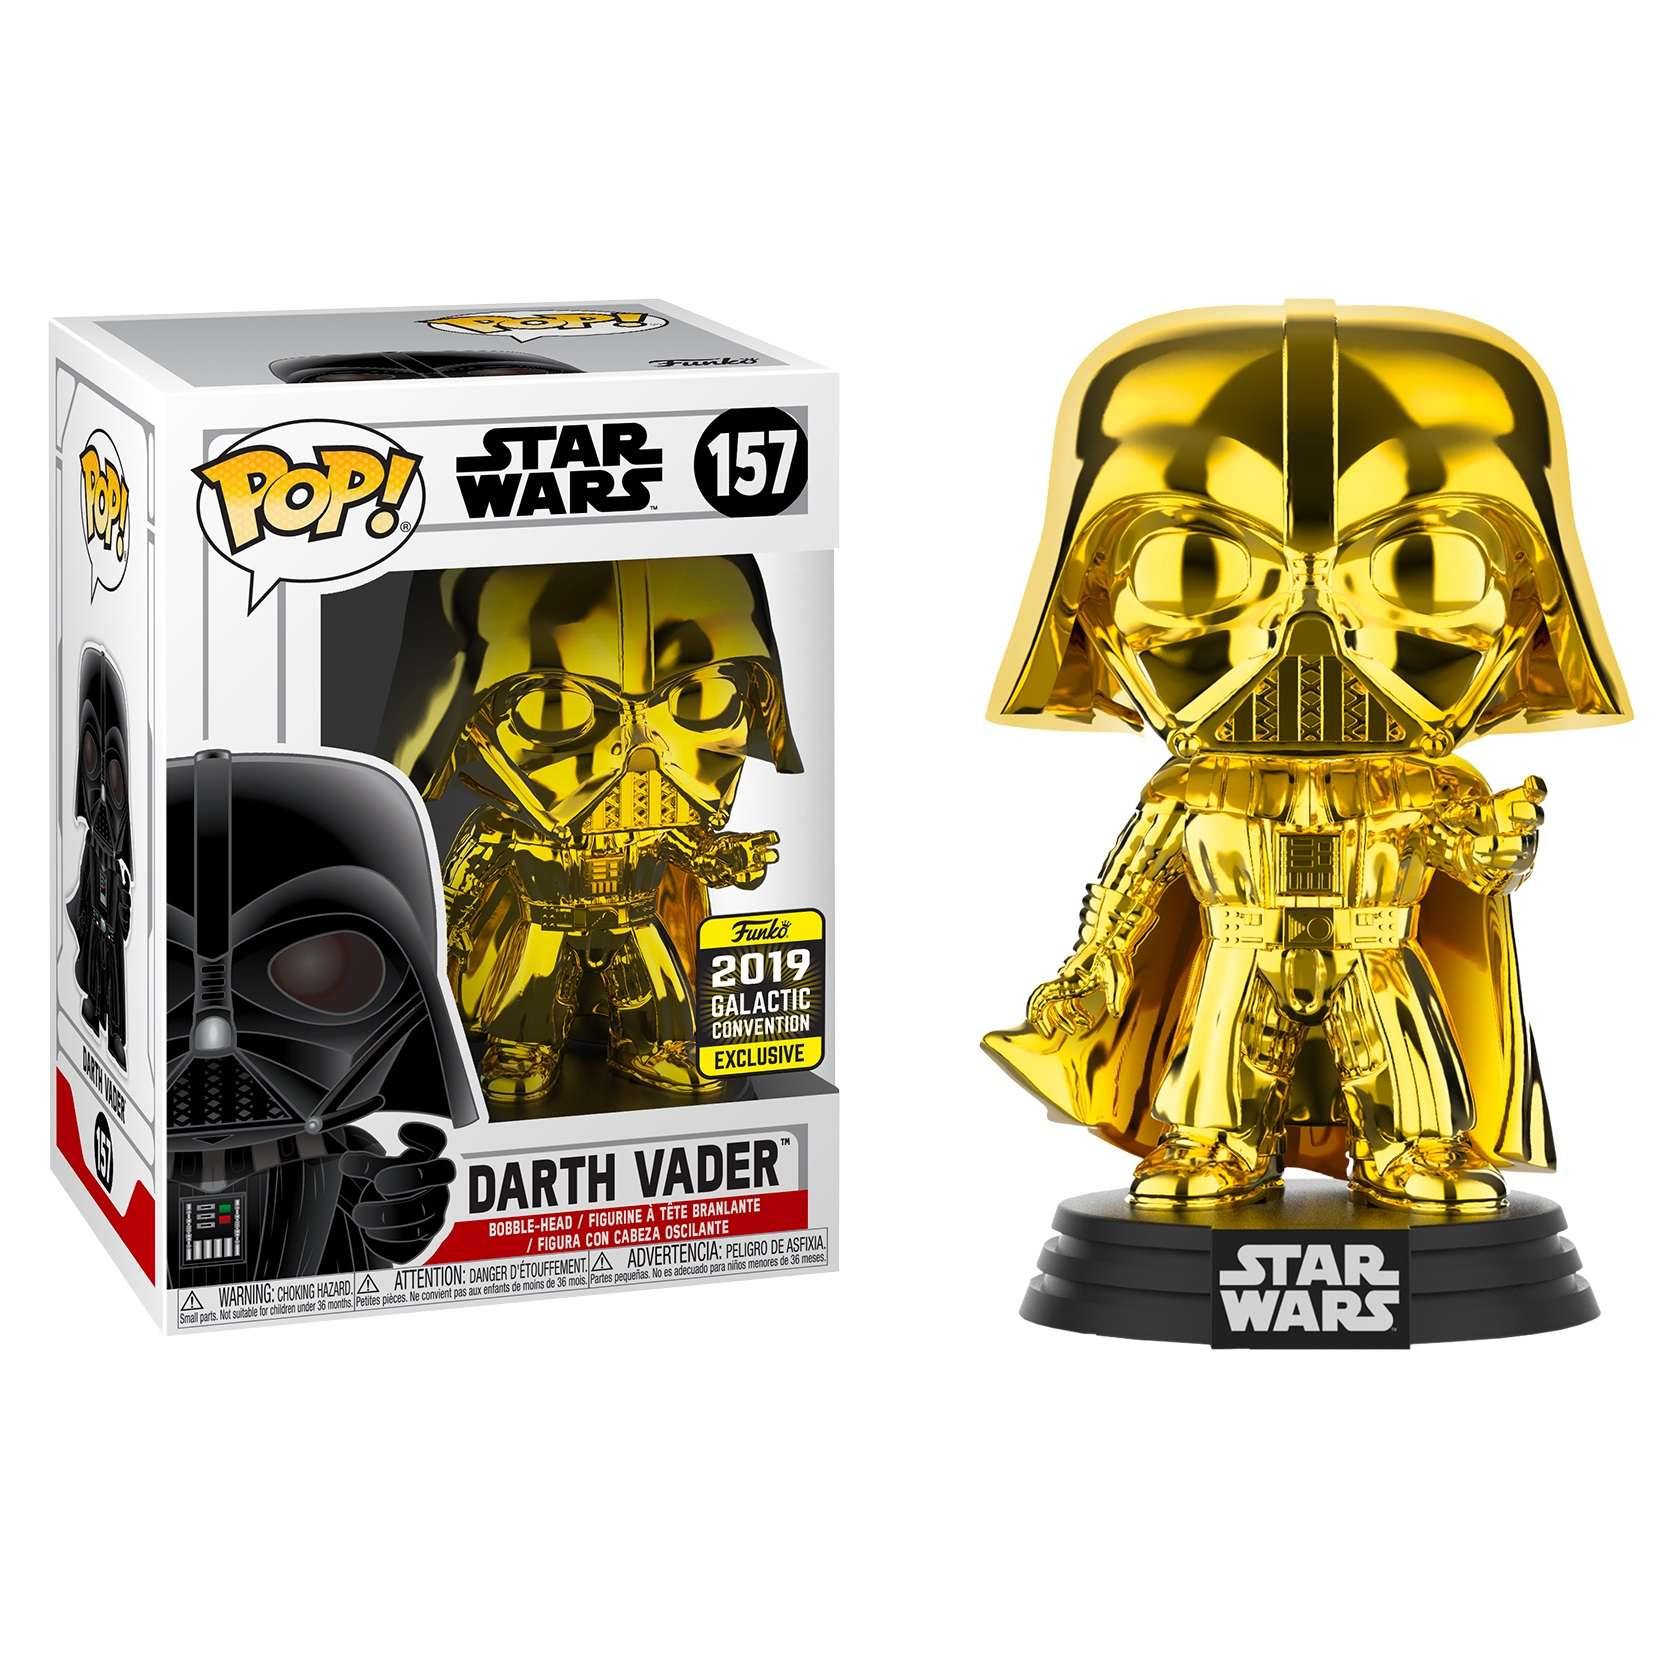 POP!: Star Wars - Darth Vader Gold Chrome (Galactic Convention Exclusive 2019) Photo